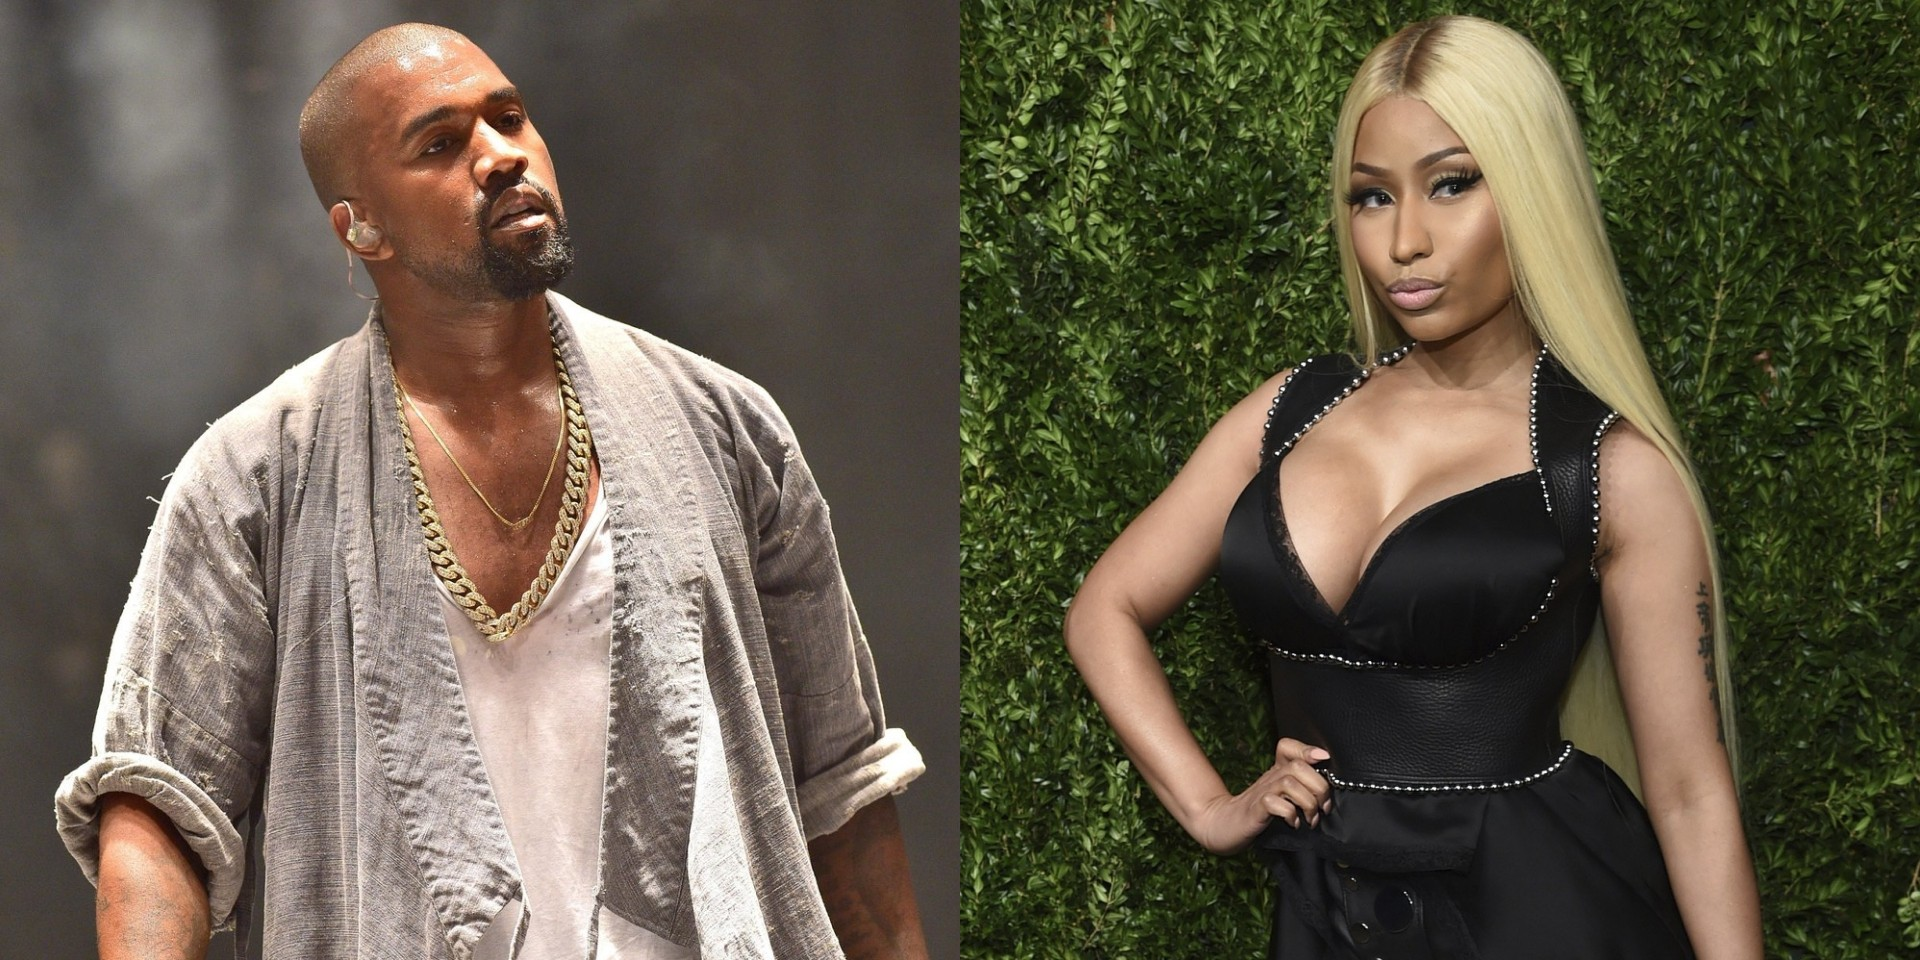 Kanye West announces new song 'New Body', featuring Nicki Minaj